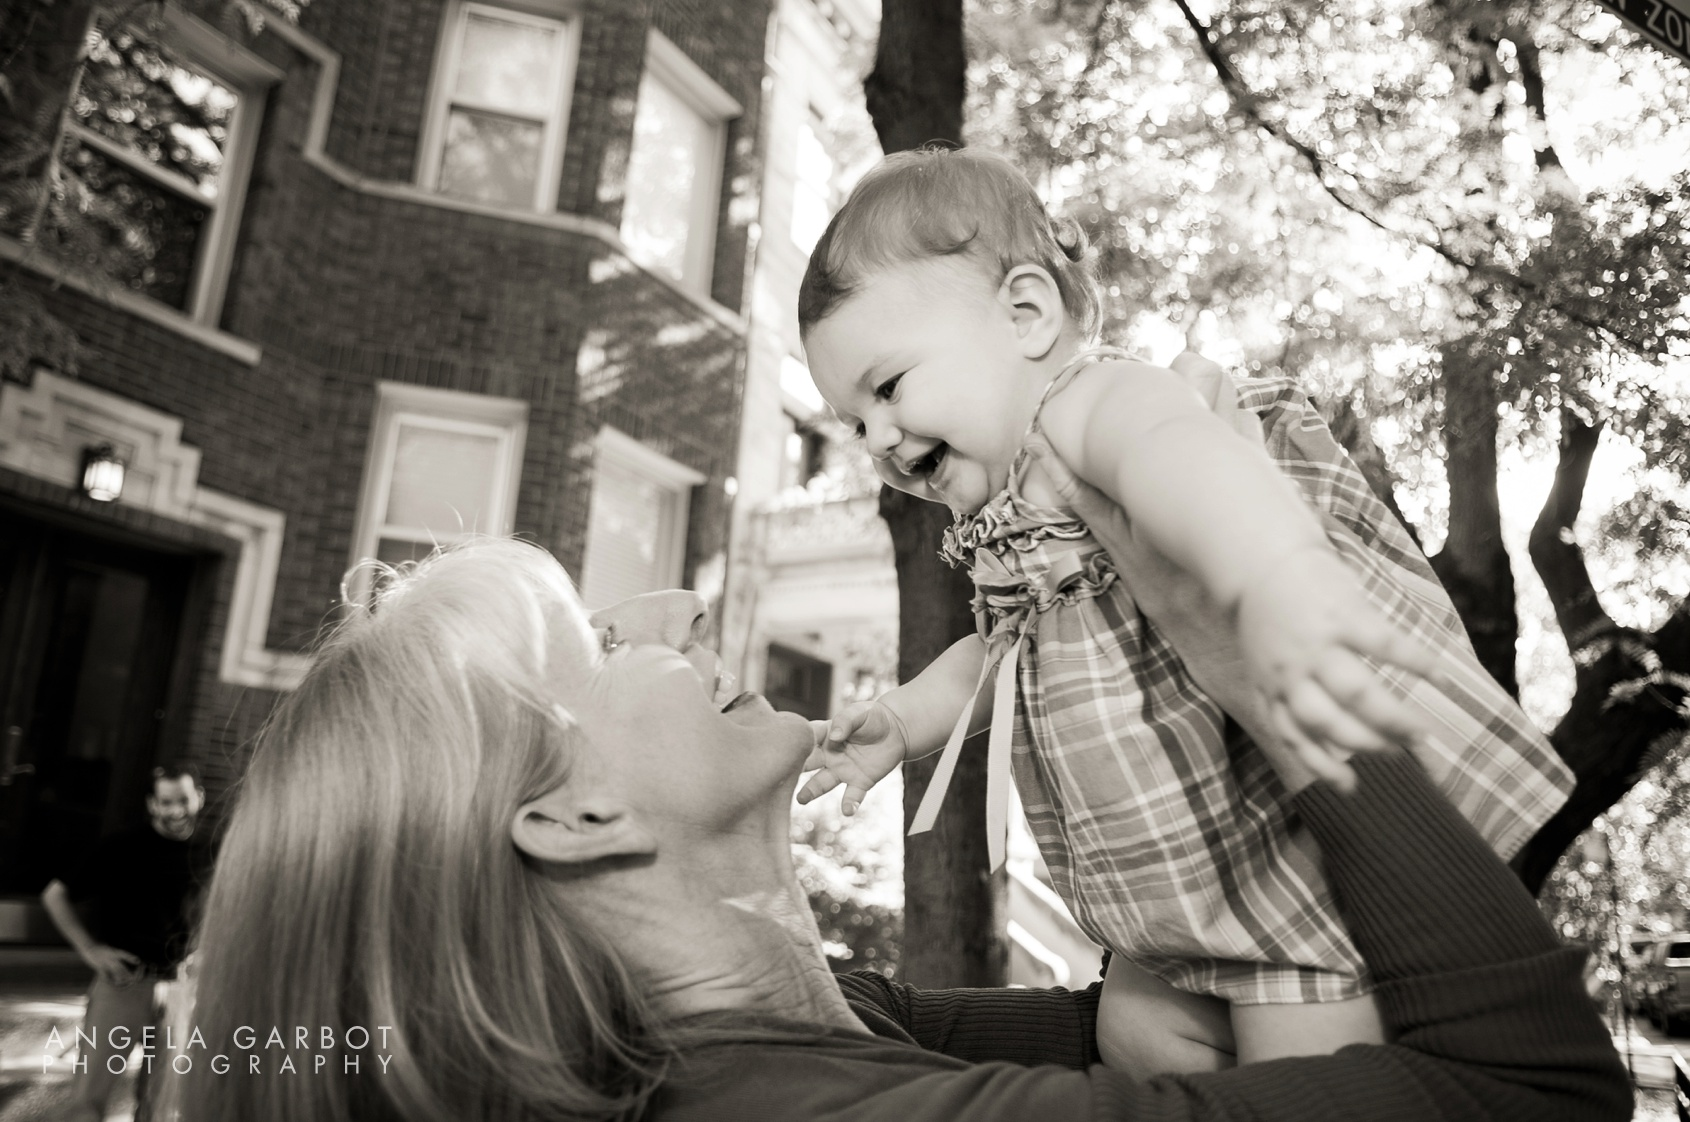 Mother's Day 2016 #charlottemothersday #chicagomothersday #mothersday #lifestylefamilyphotography #charlottefamily #chicagofamily ©2016 Angela Garbot http://www.AngelaGarbot.com